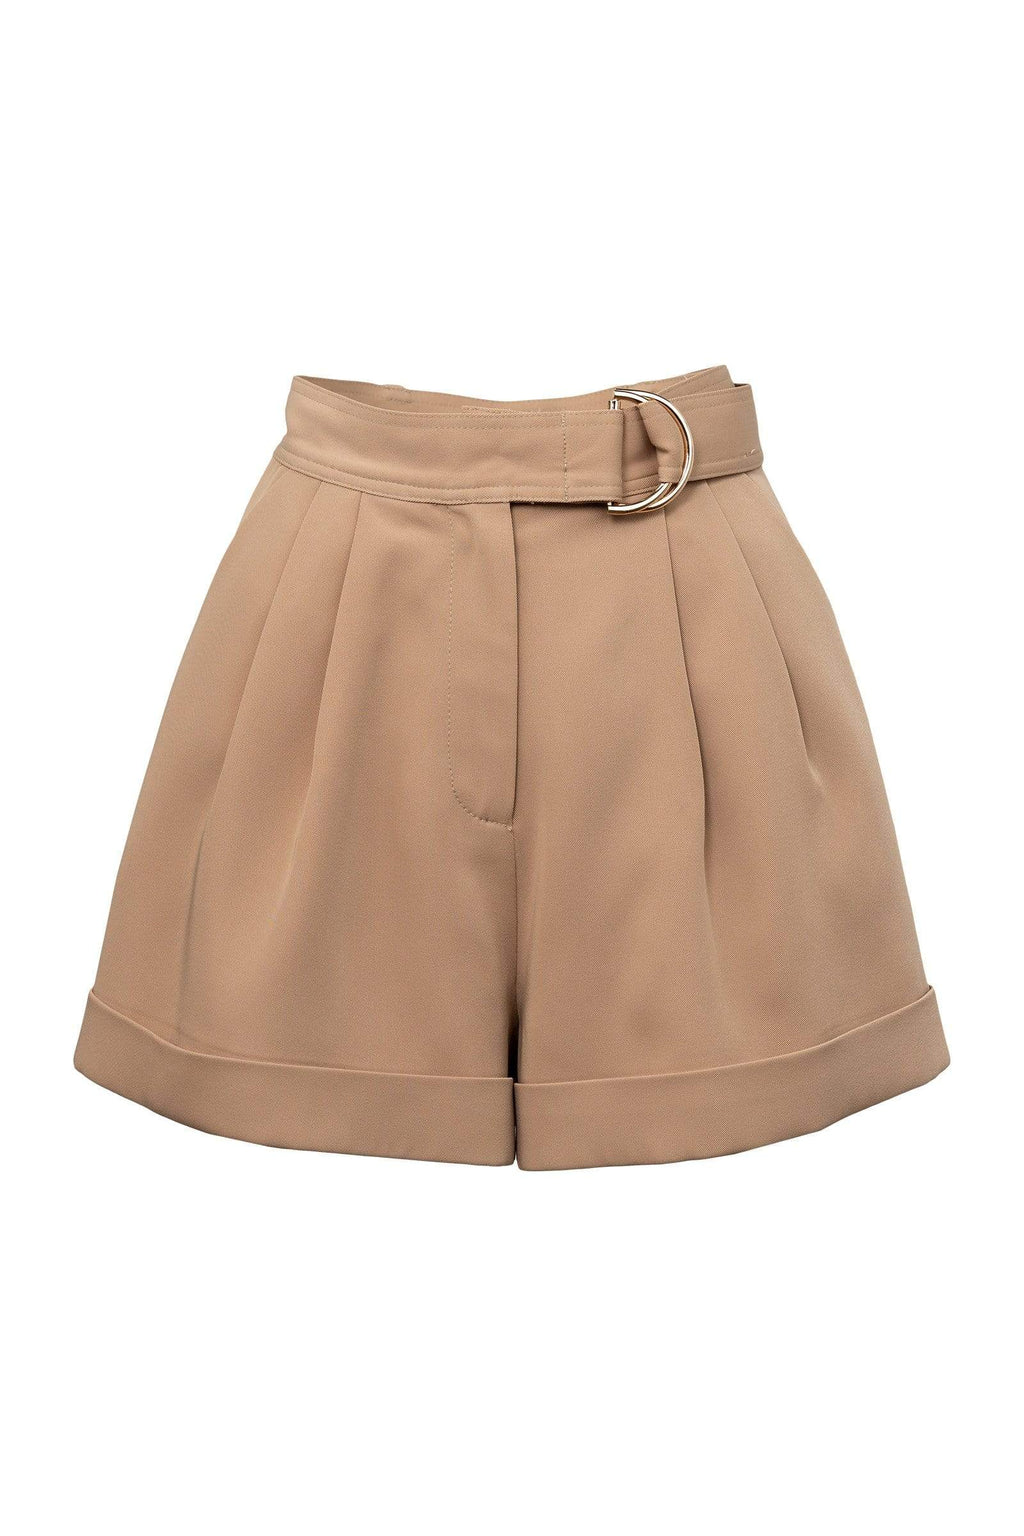 Tia Tan Shorts | J.ING Women's Apparel